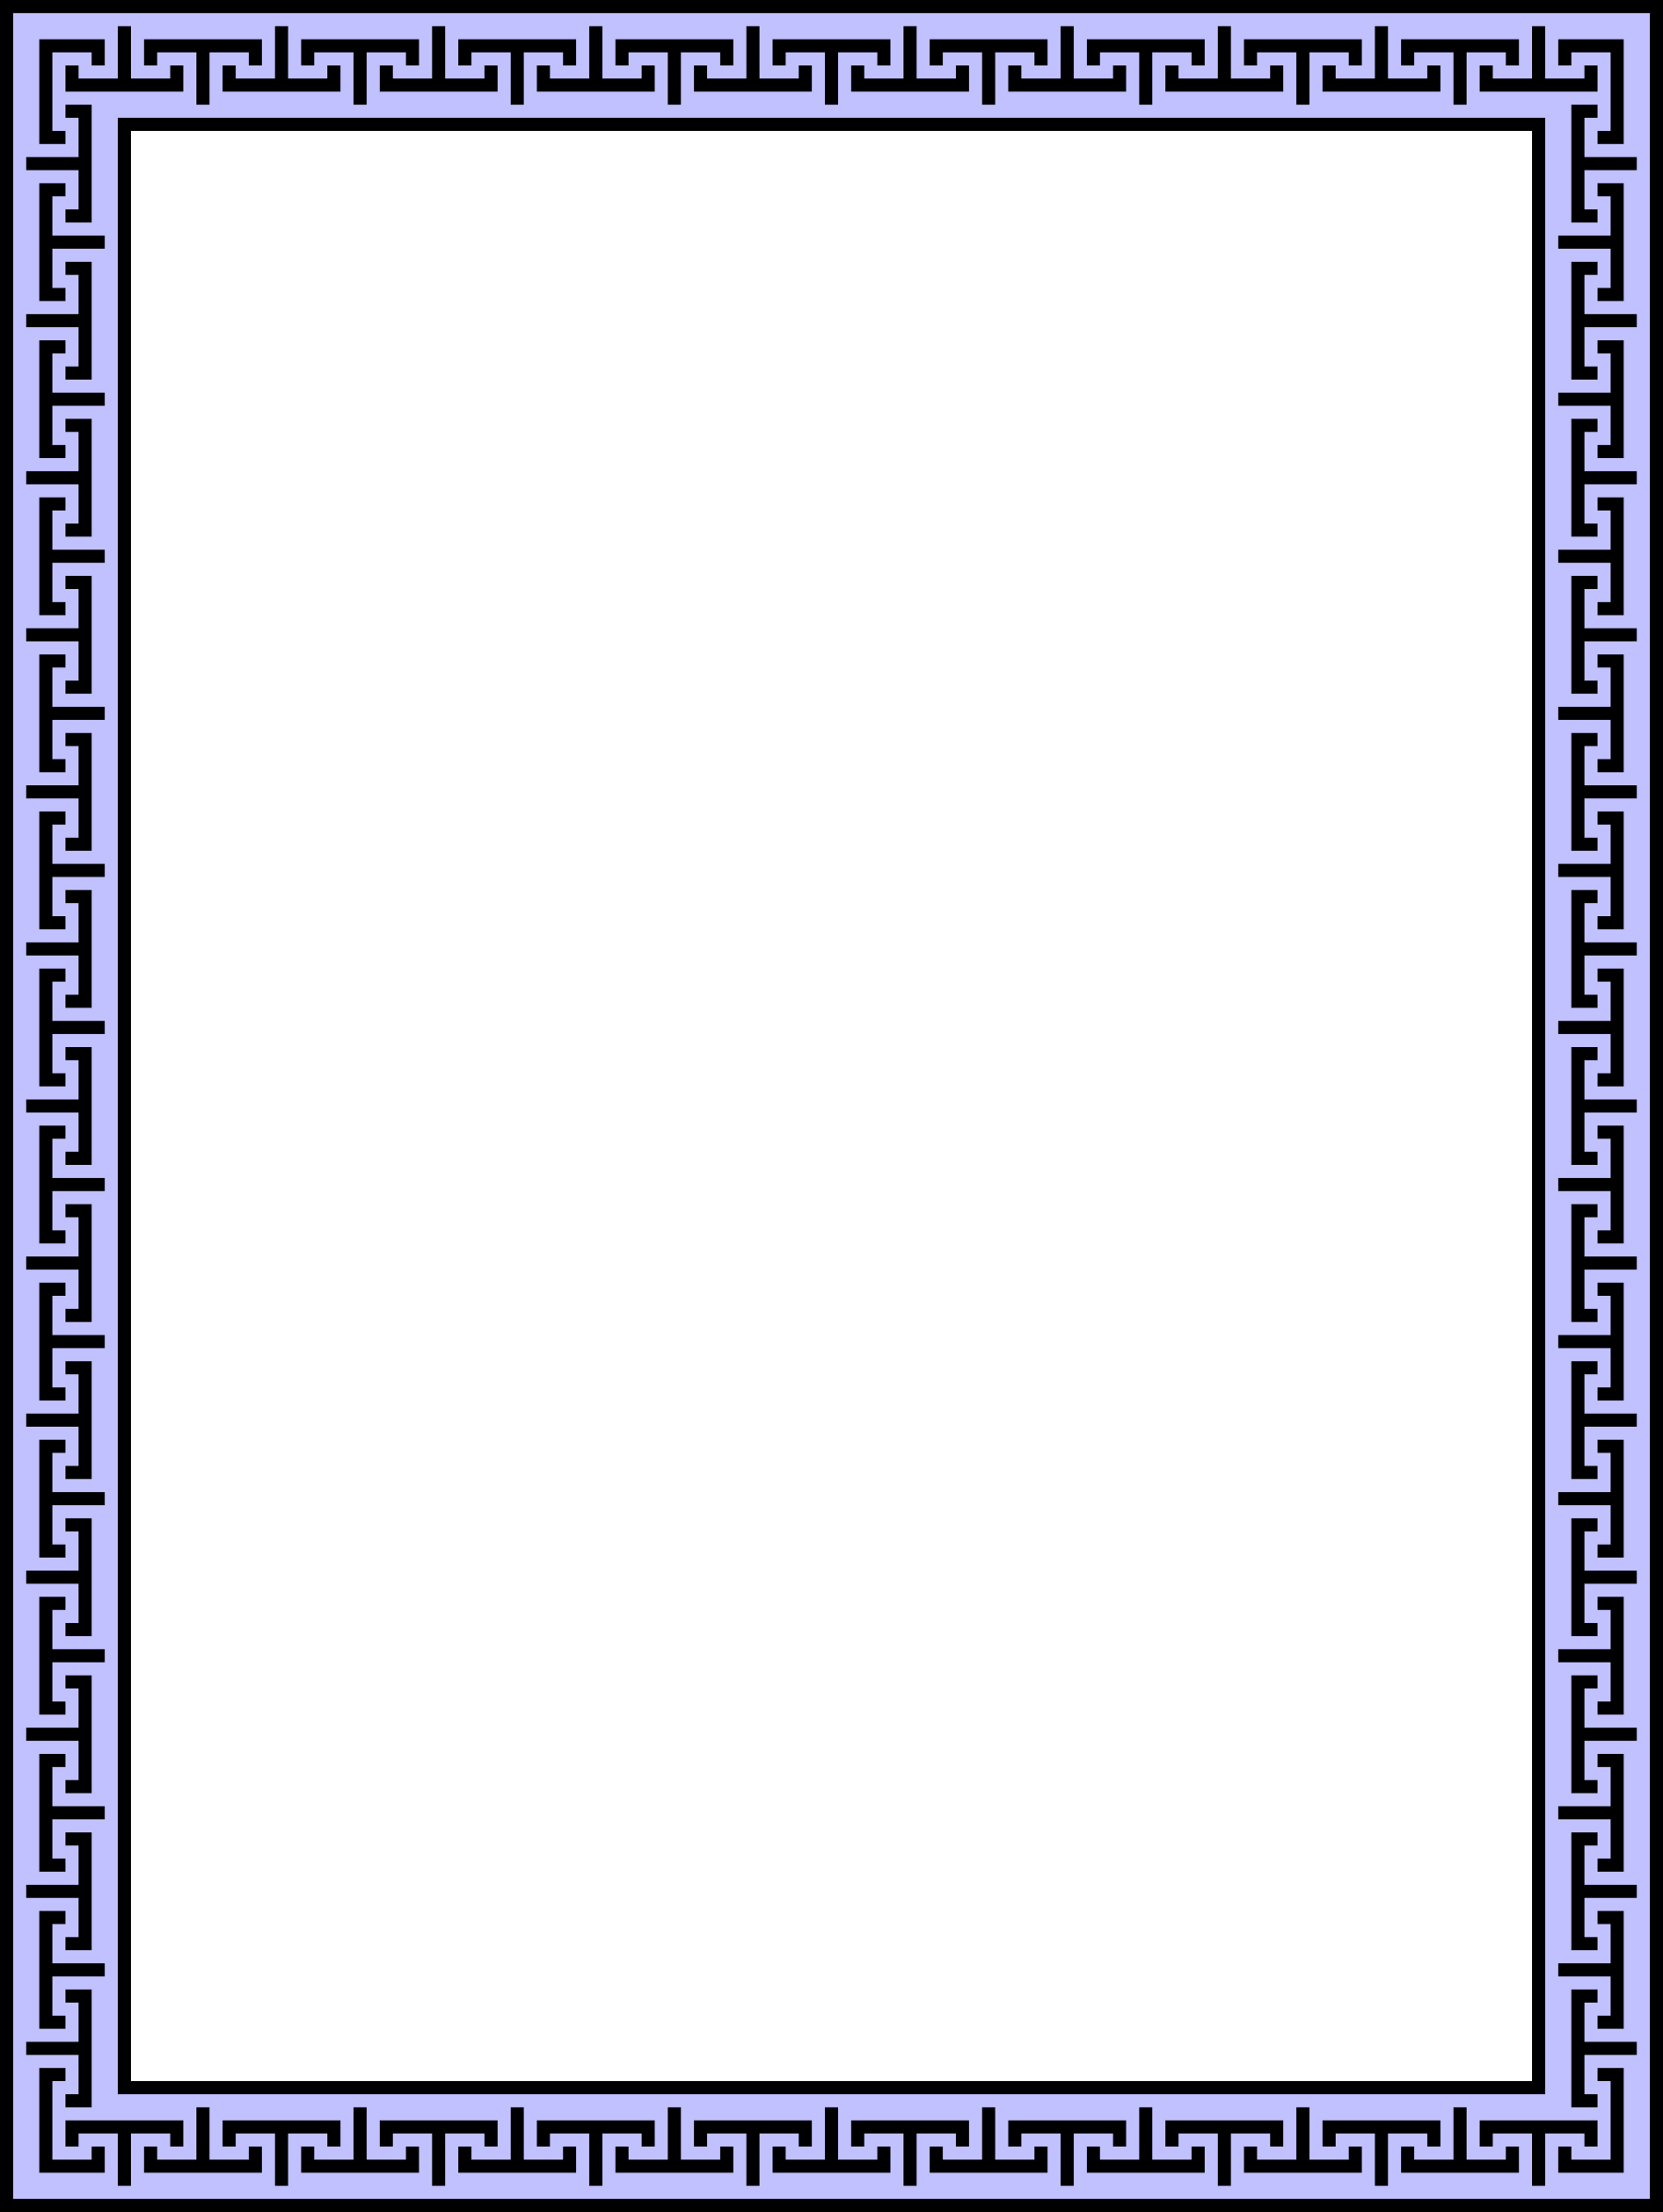 Clipart - Greek-style frame 2